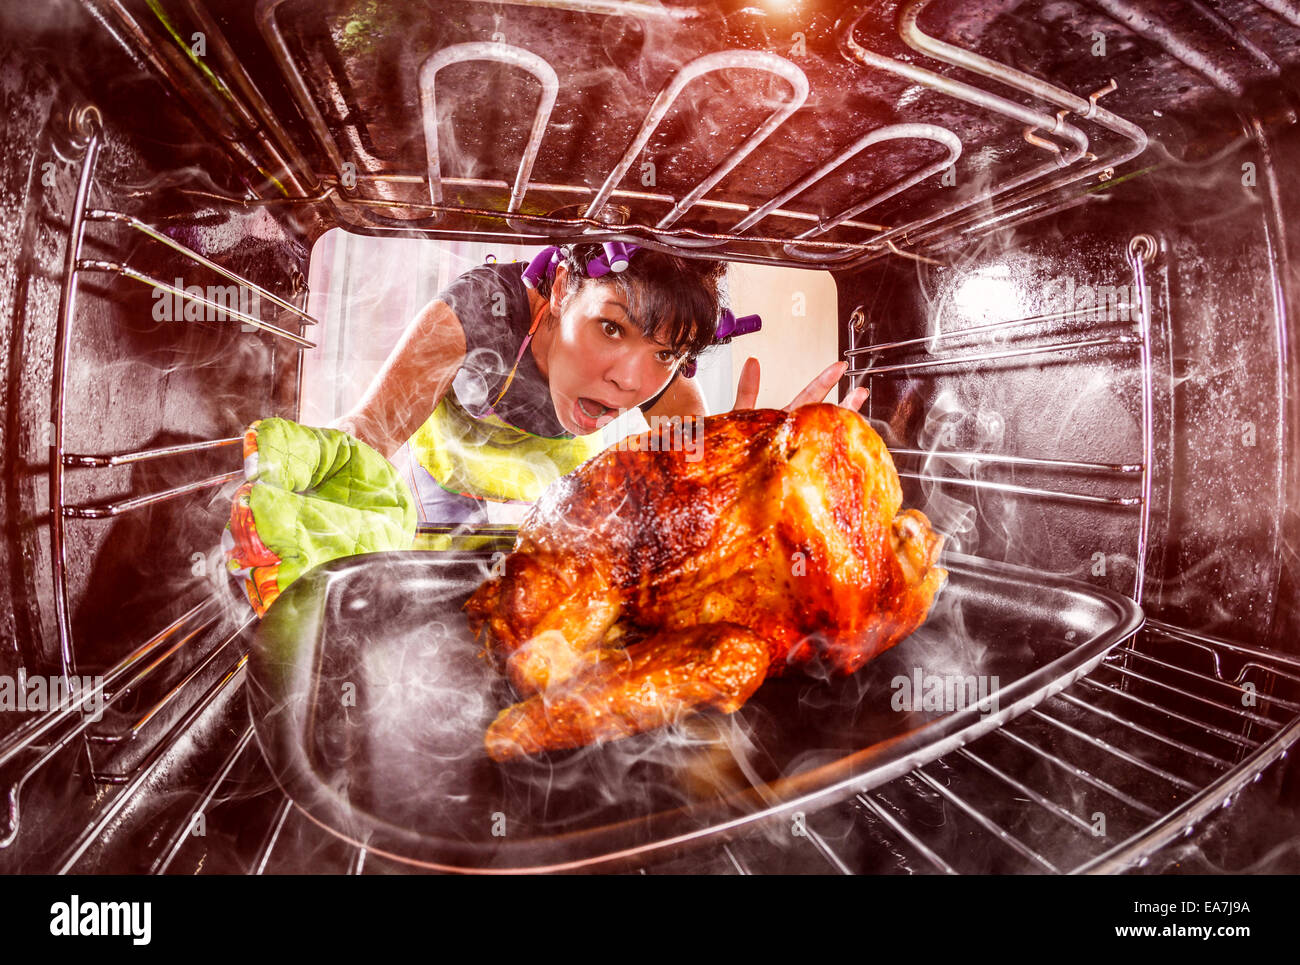 Funny Housewife overlooked roast chicken in the oven, so she had scorched , view from the inside of the oven. Housewife - Stock Image